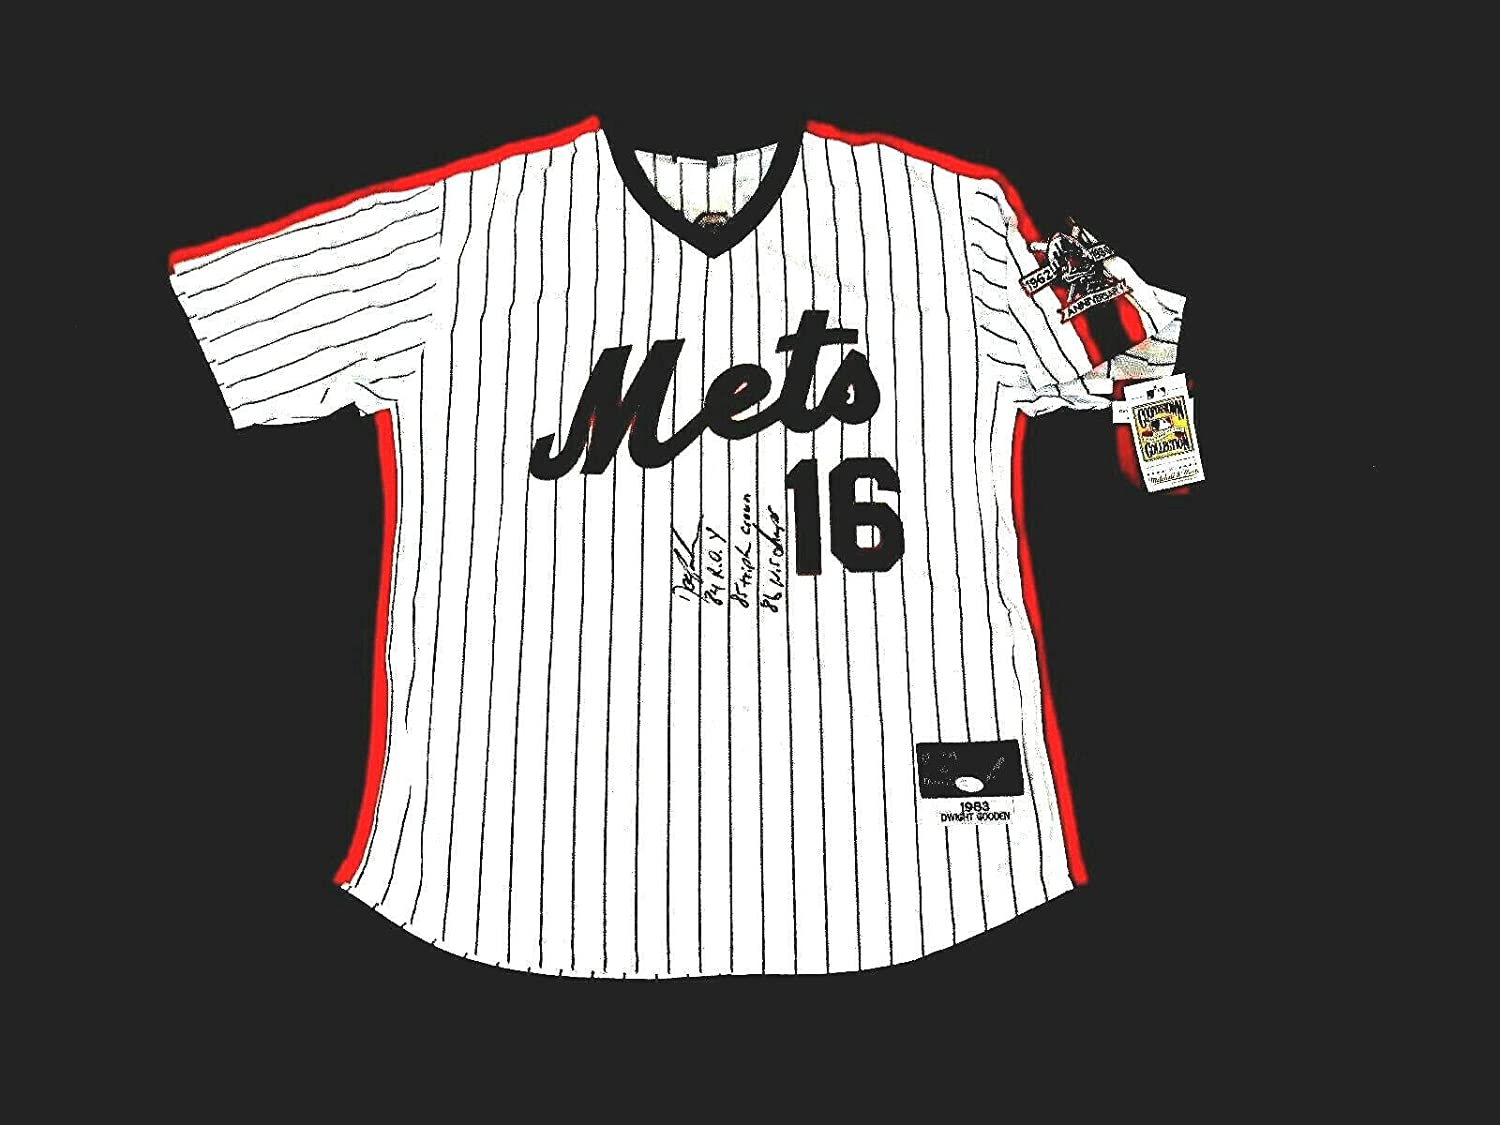 Dwight Gooden Autographed Jersey - Doc 86 Wsc 84 Roy 85tc Mitchell & Ness - JSA Certified - Autographed MLB Jerseys